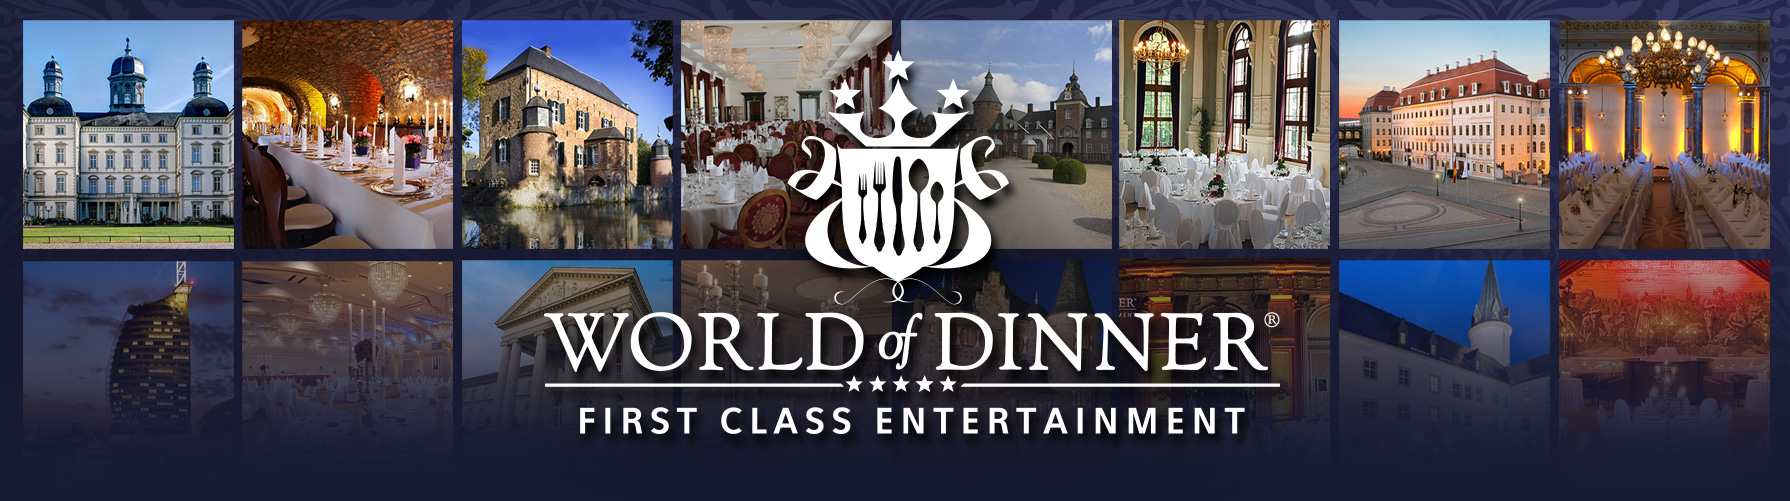 Schloss Borbeck Hochzeit World Of Dinner Alle Spielorte World Of Dinner